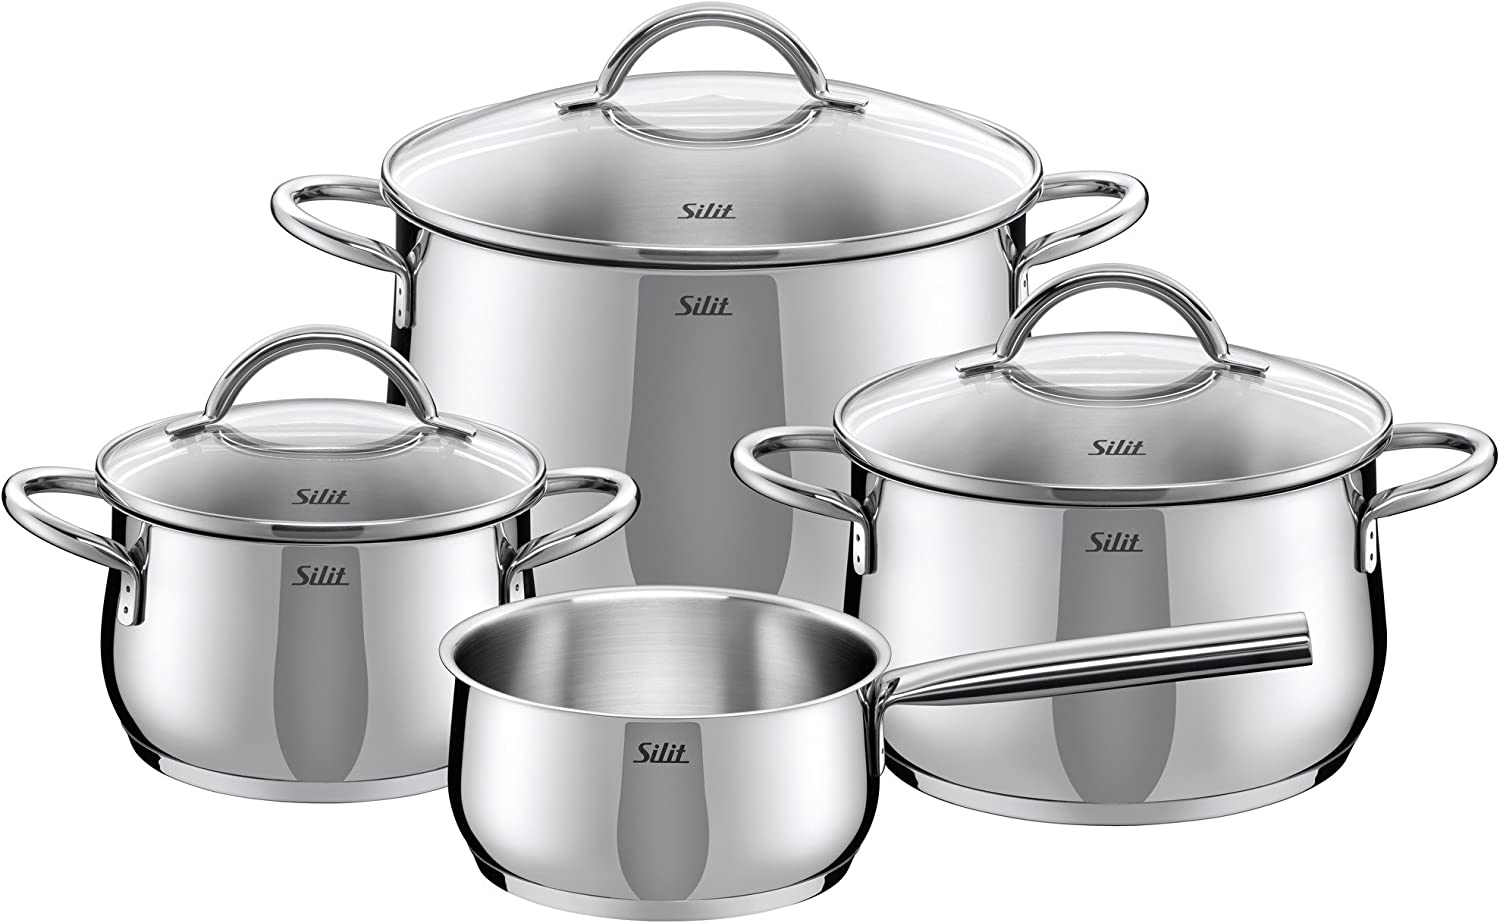 Silver Silit Cookware Set Comodo 4 pcs of Stainless Steel 48 x 48 x 28 cm